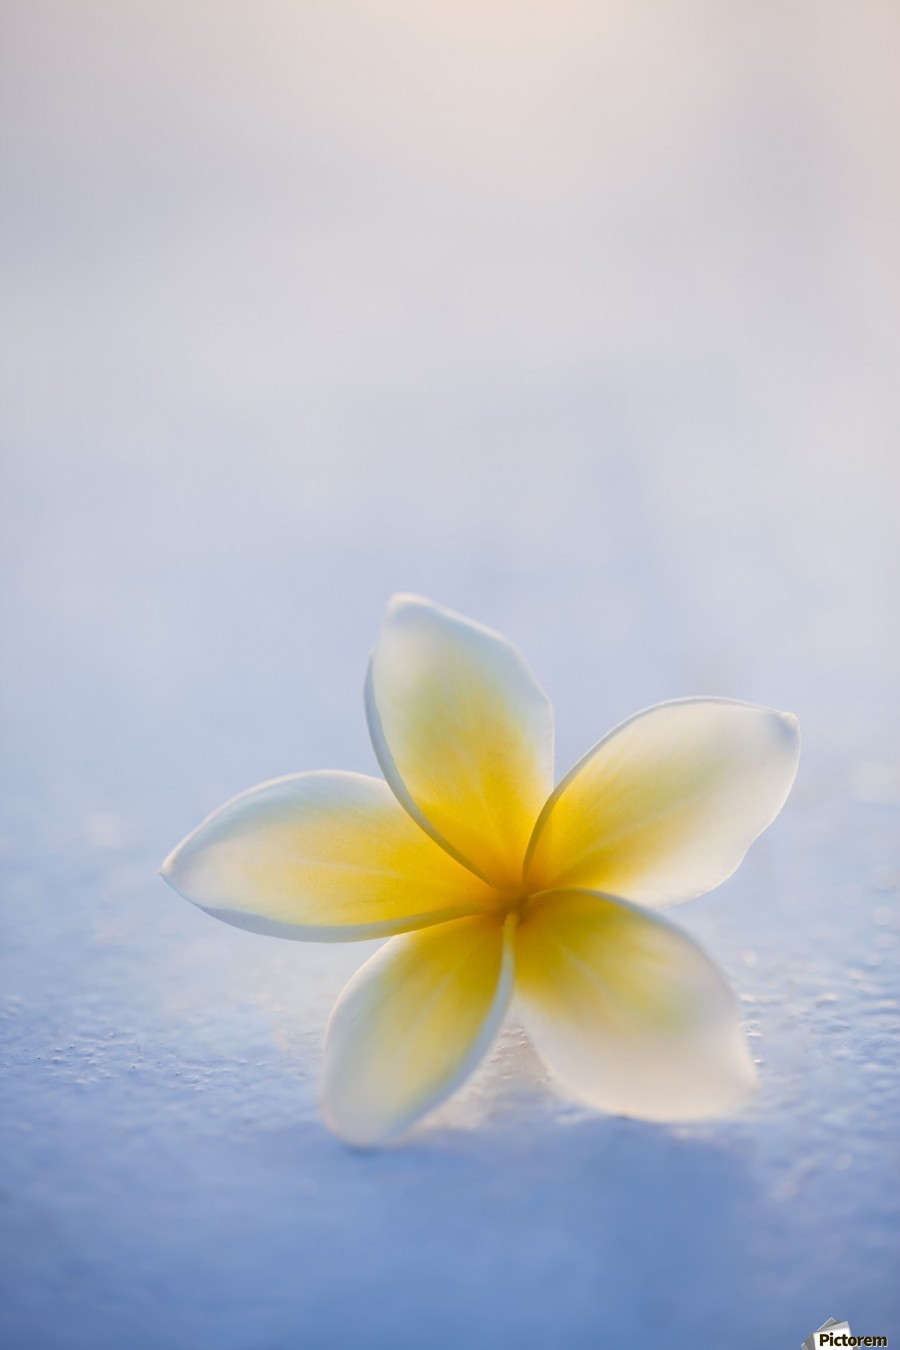 Close-up of a single beautiful yellow Plumeria flower (Apocynaceae) in soft focus; Honolulu, Oahu, Hawaii, United States of America  Print